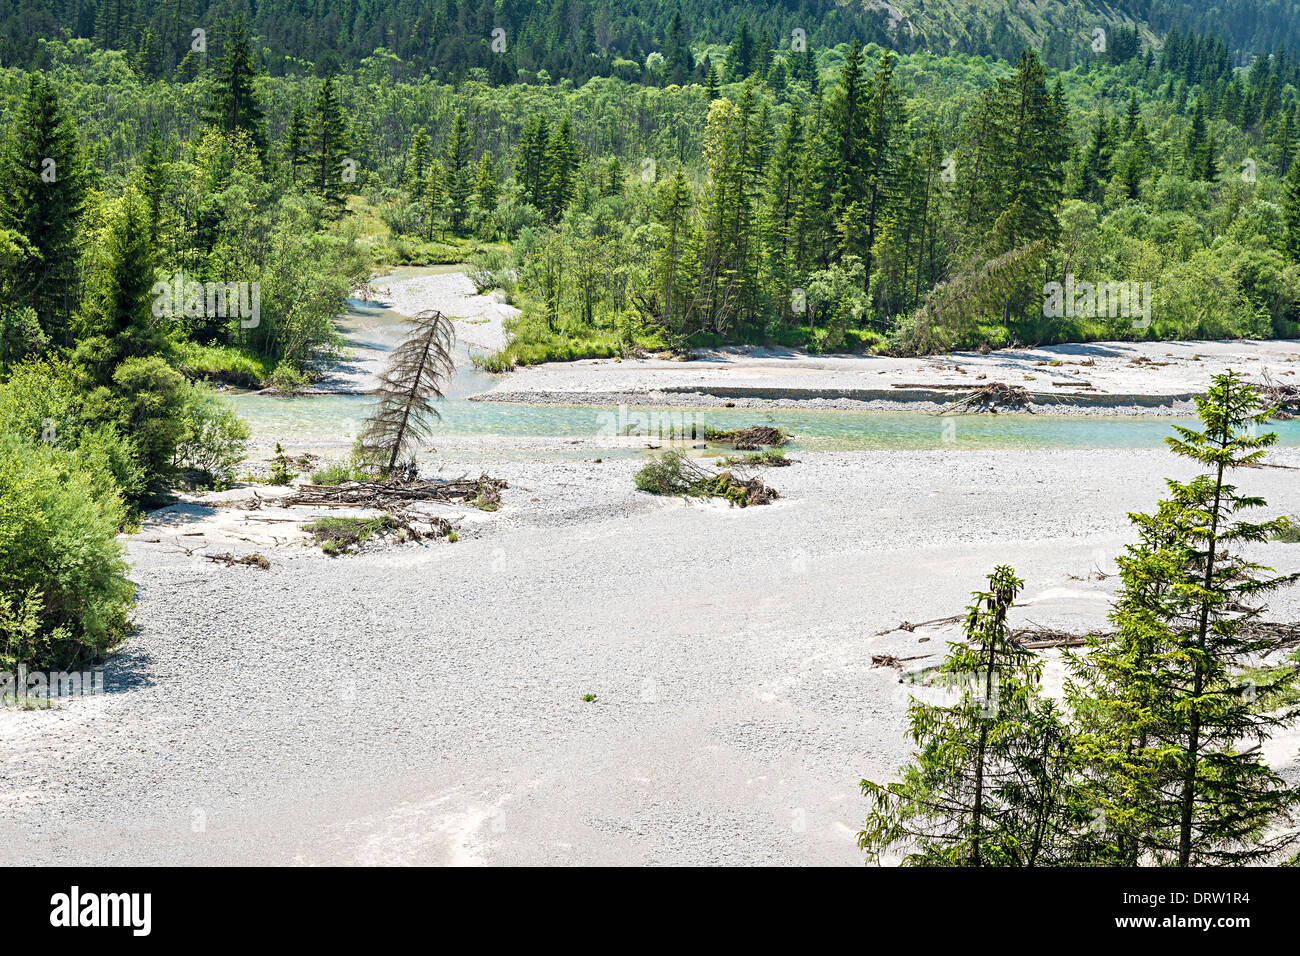 Trees and river named Isar in the alps at Karwendel - Stock Image